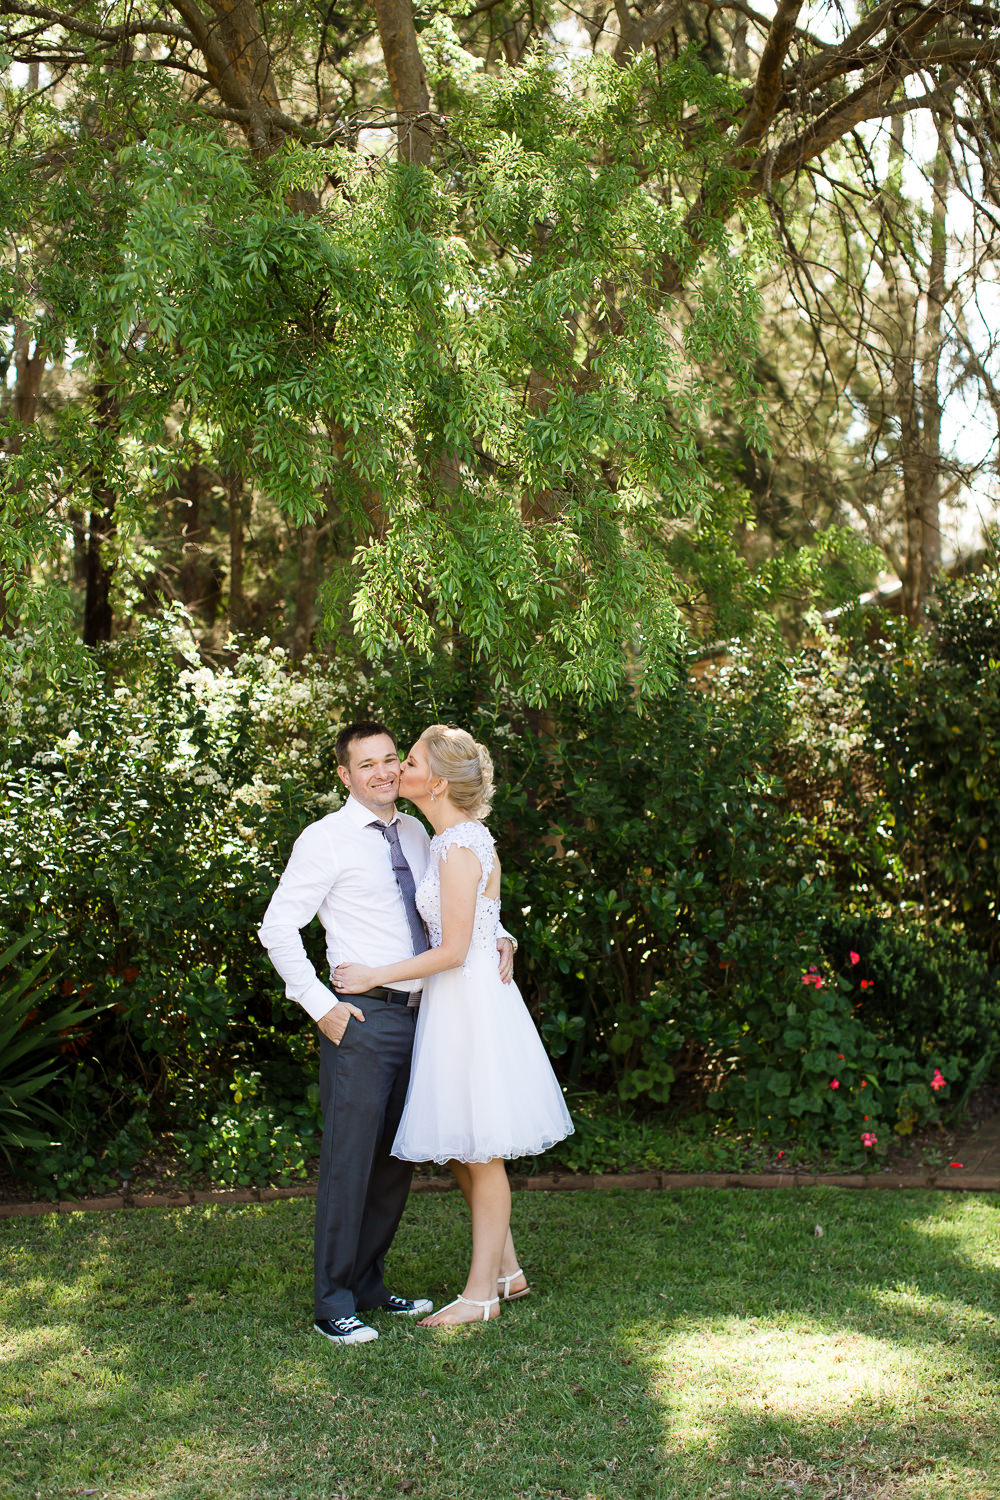 relaxed-wedding-non-traditional-wedding-gemma-clarke-phtography-australian-wedding-51